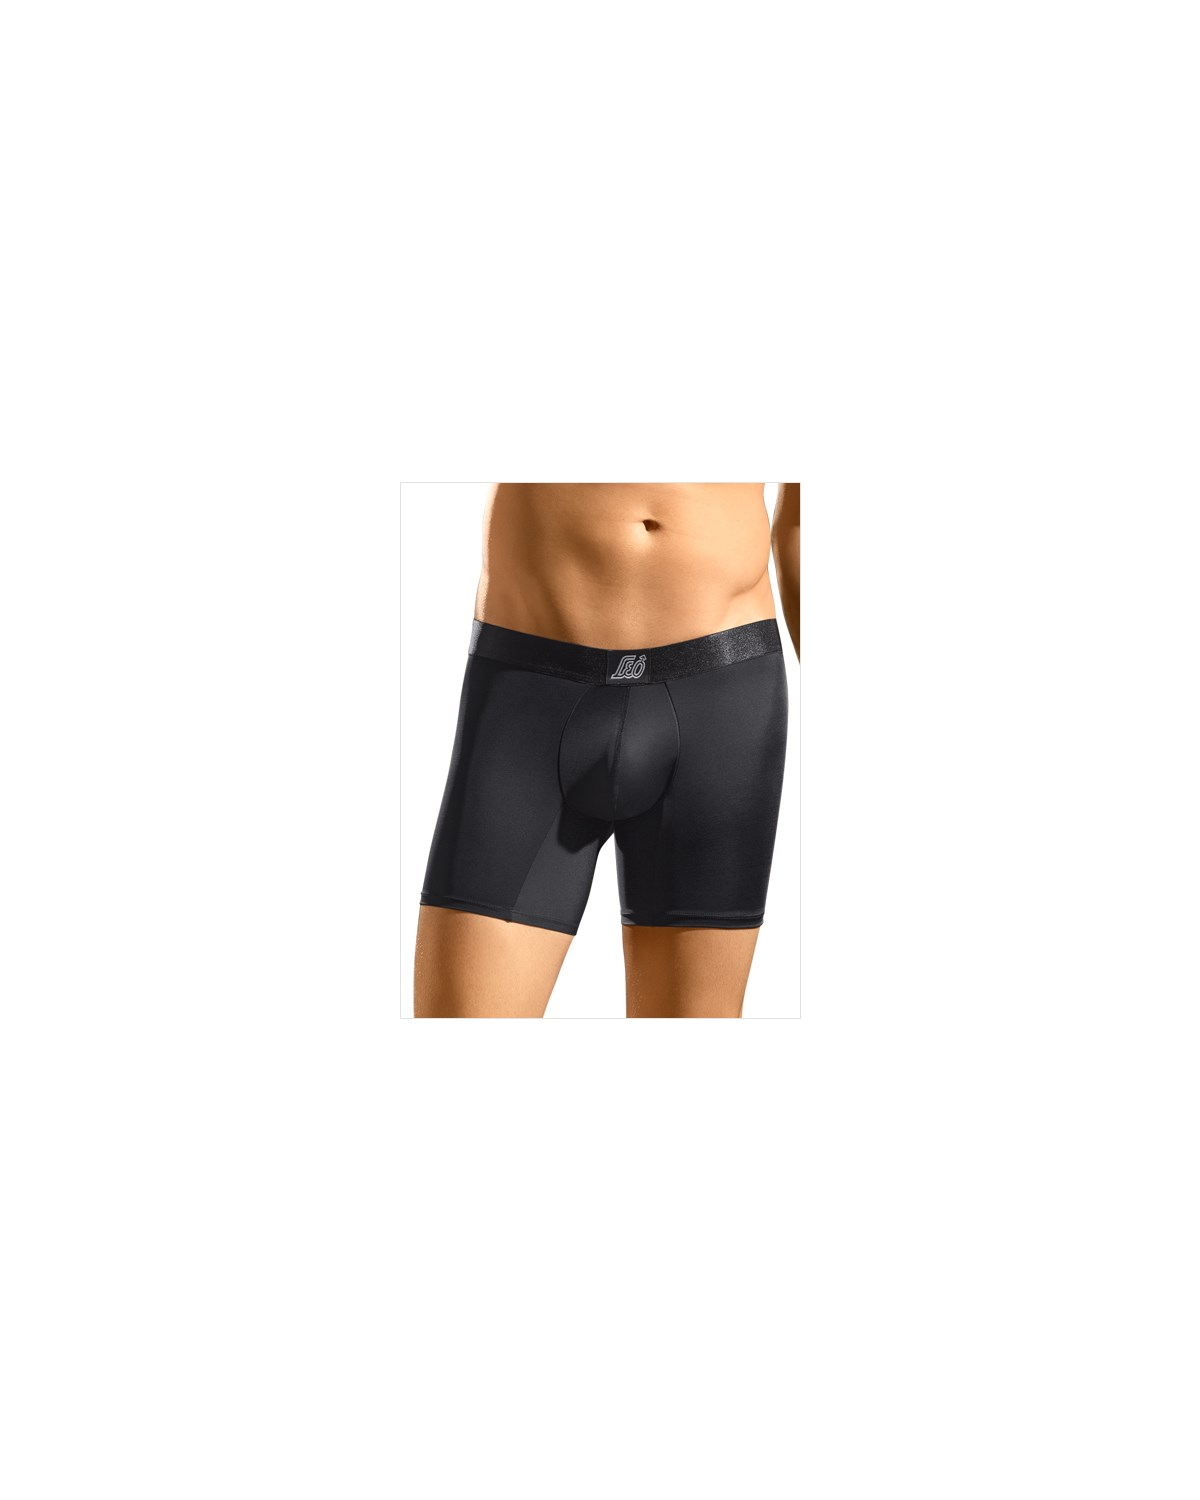 leo sport boxer brief-700- Black-MainImage